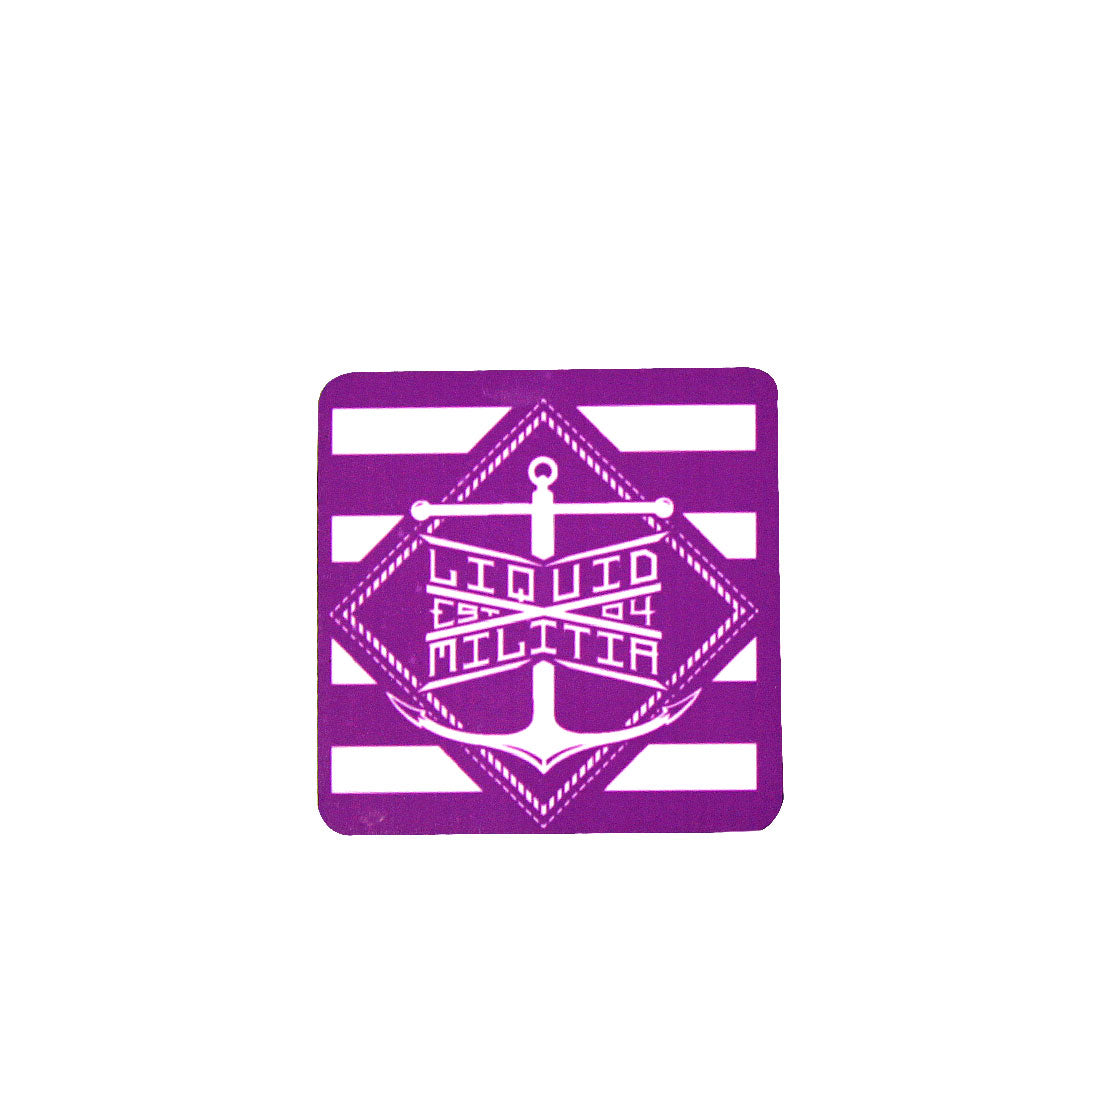 Liquid Militia Purple and White anchor magnet